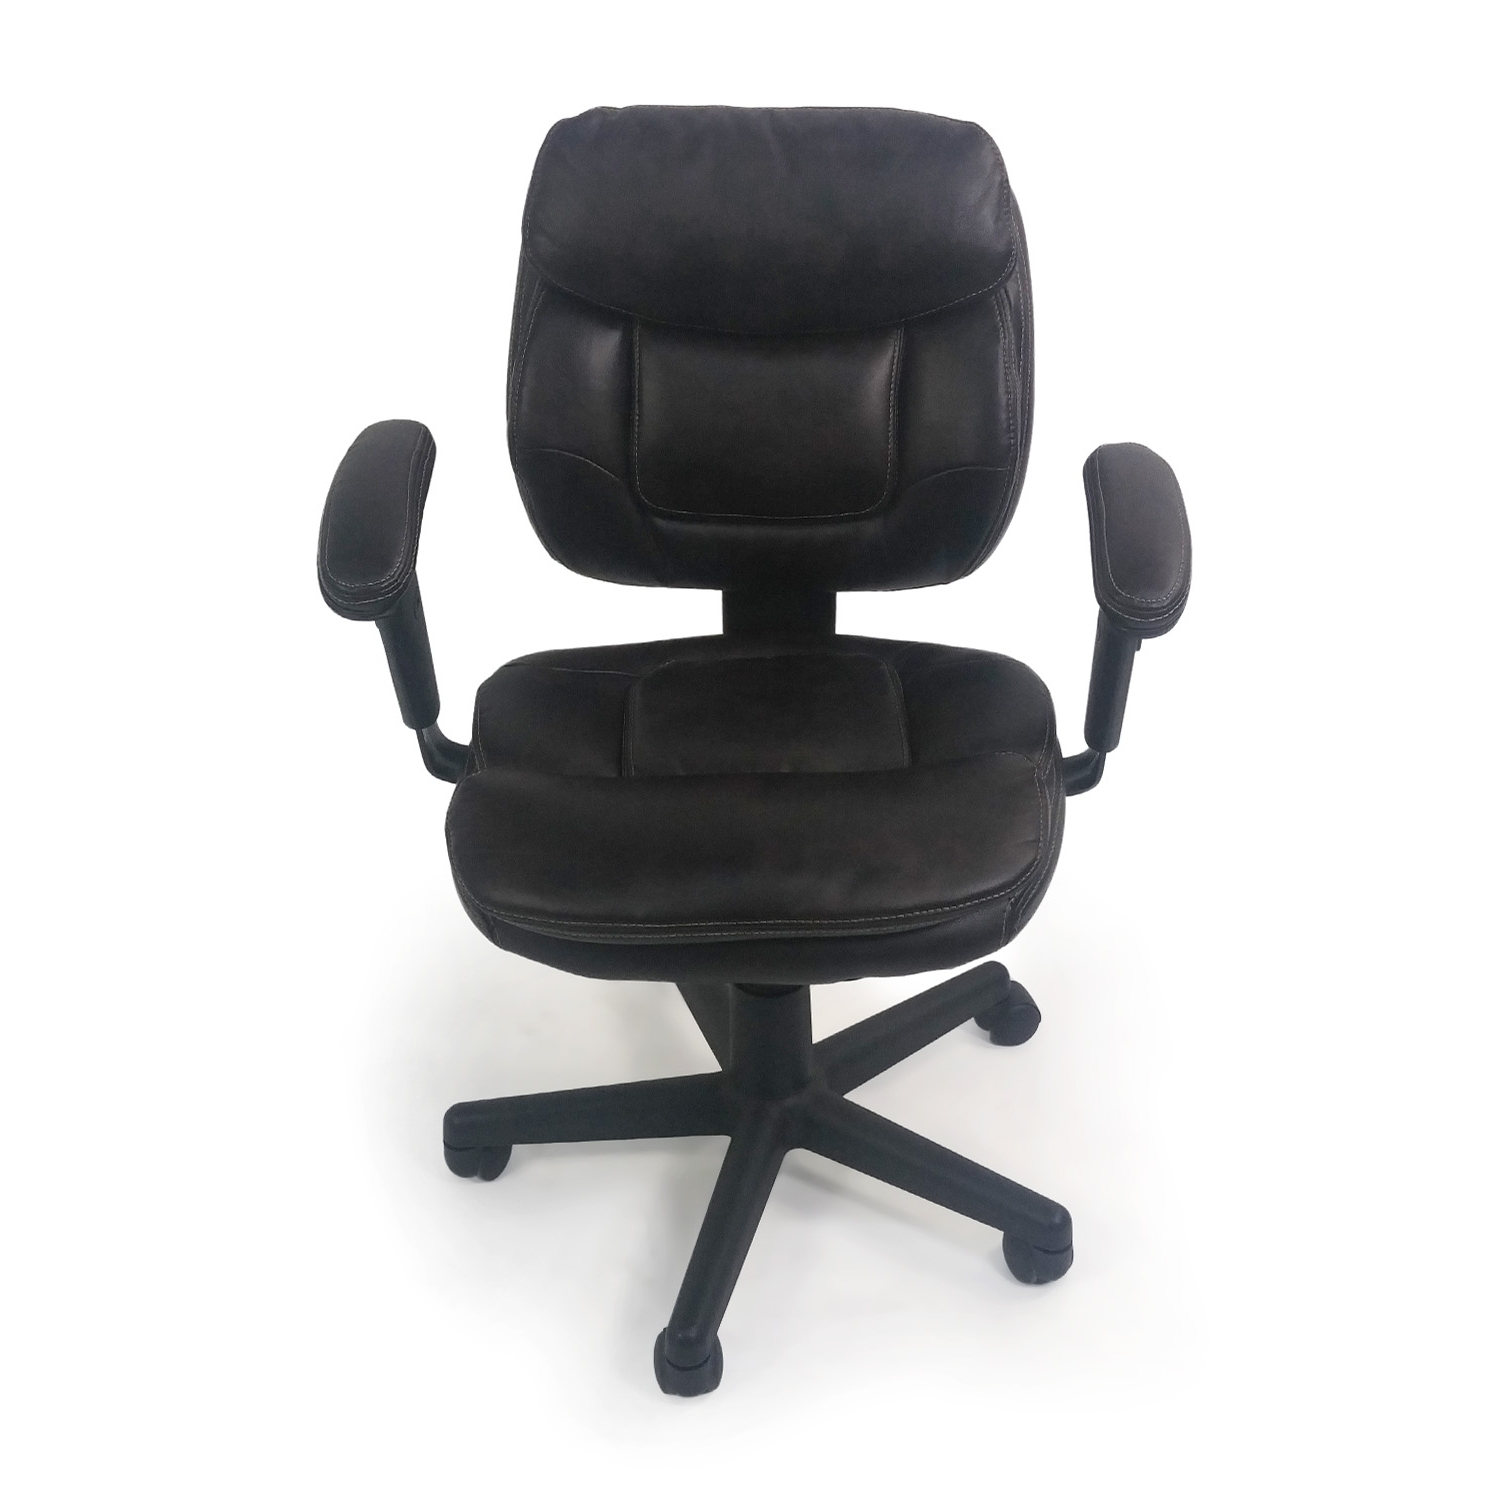 [%86% Off – Plush Faux Leather Office Chair / Chairs Within Recent Plush Executive Office Chairs|Plush Executive Office Chairs Throughout Famous 86% Off – Plush Faux Leather Office Chair / Chairs|Recent Plush Executive Office Chairs In 86% Off – Plush Faux Leather Office Chair / Chairs|2018 86% Off – Plush Faux Leather Office Chair / Chairs With Regard To Plush Executive Office Chairs%] (View 1 of 20)